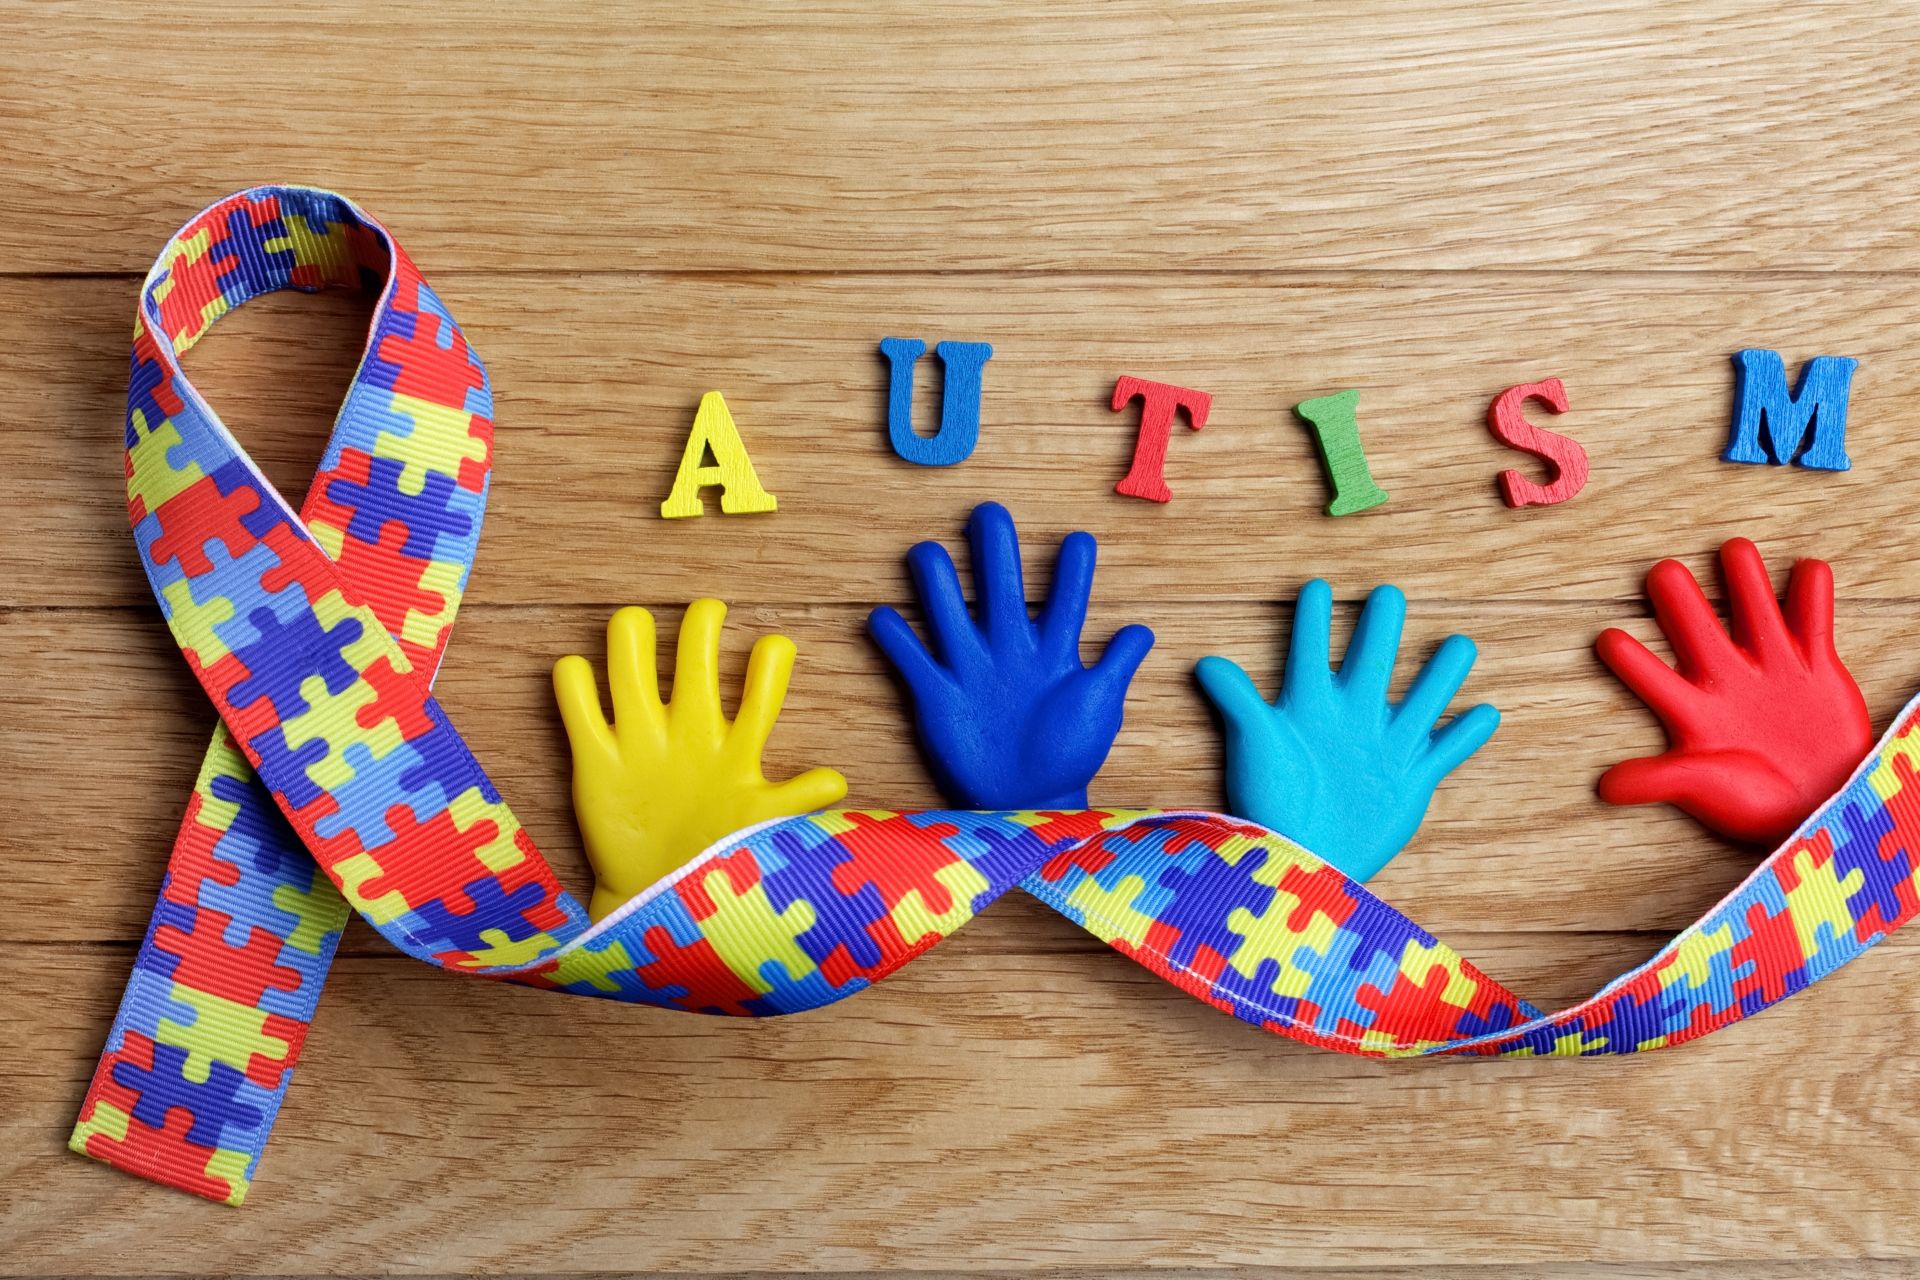 25 Children's Books Featuring Autism